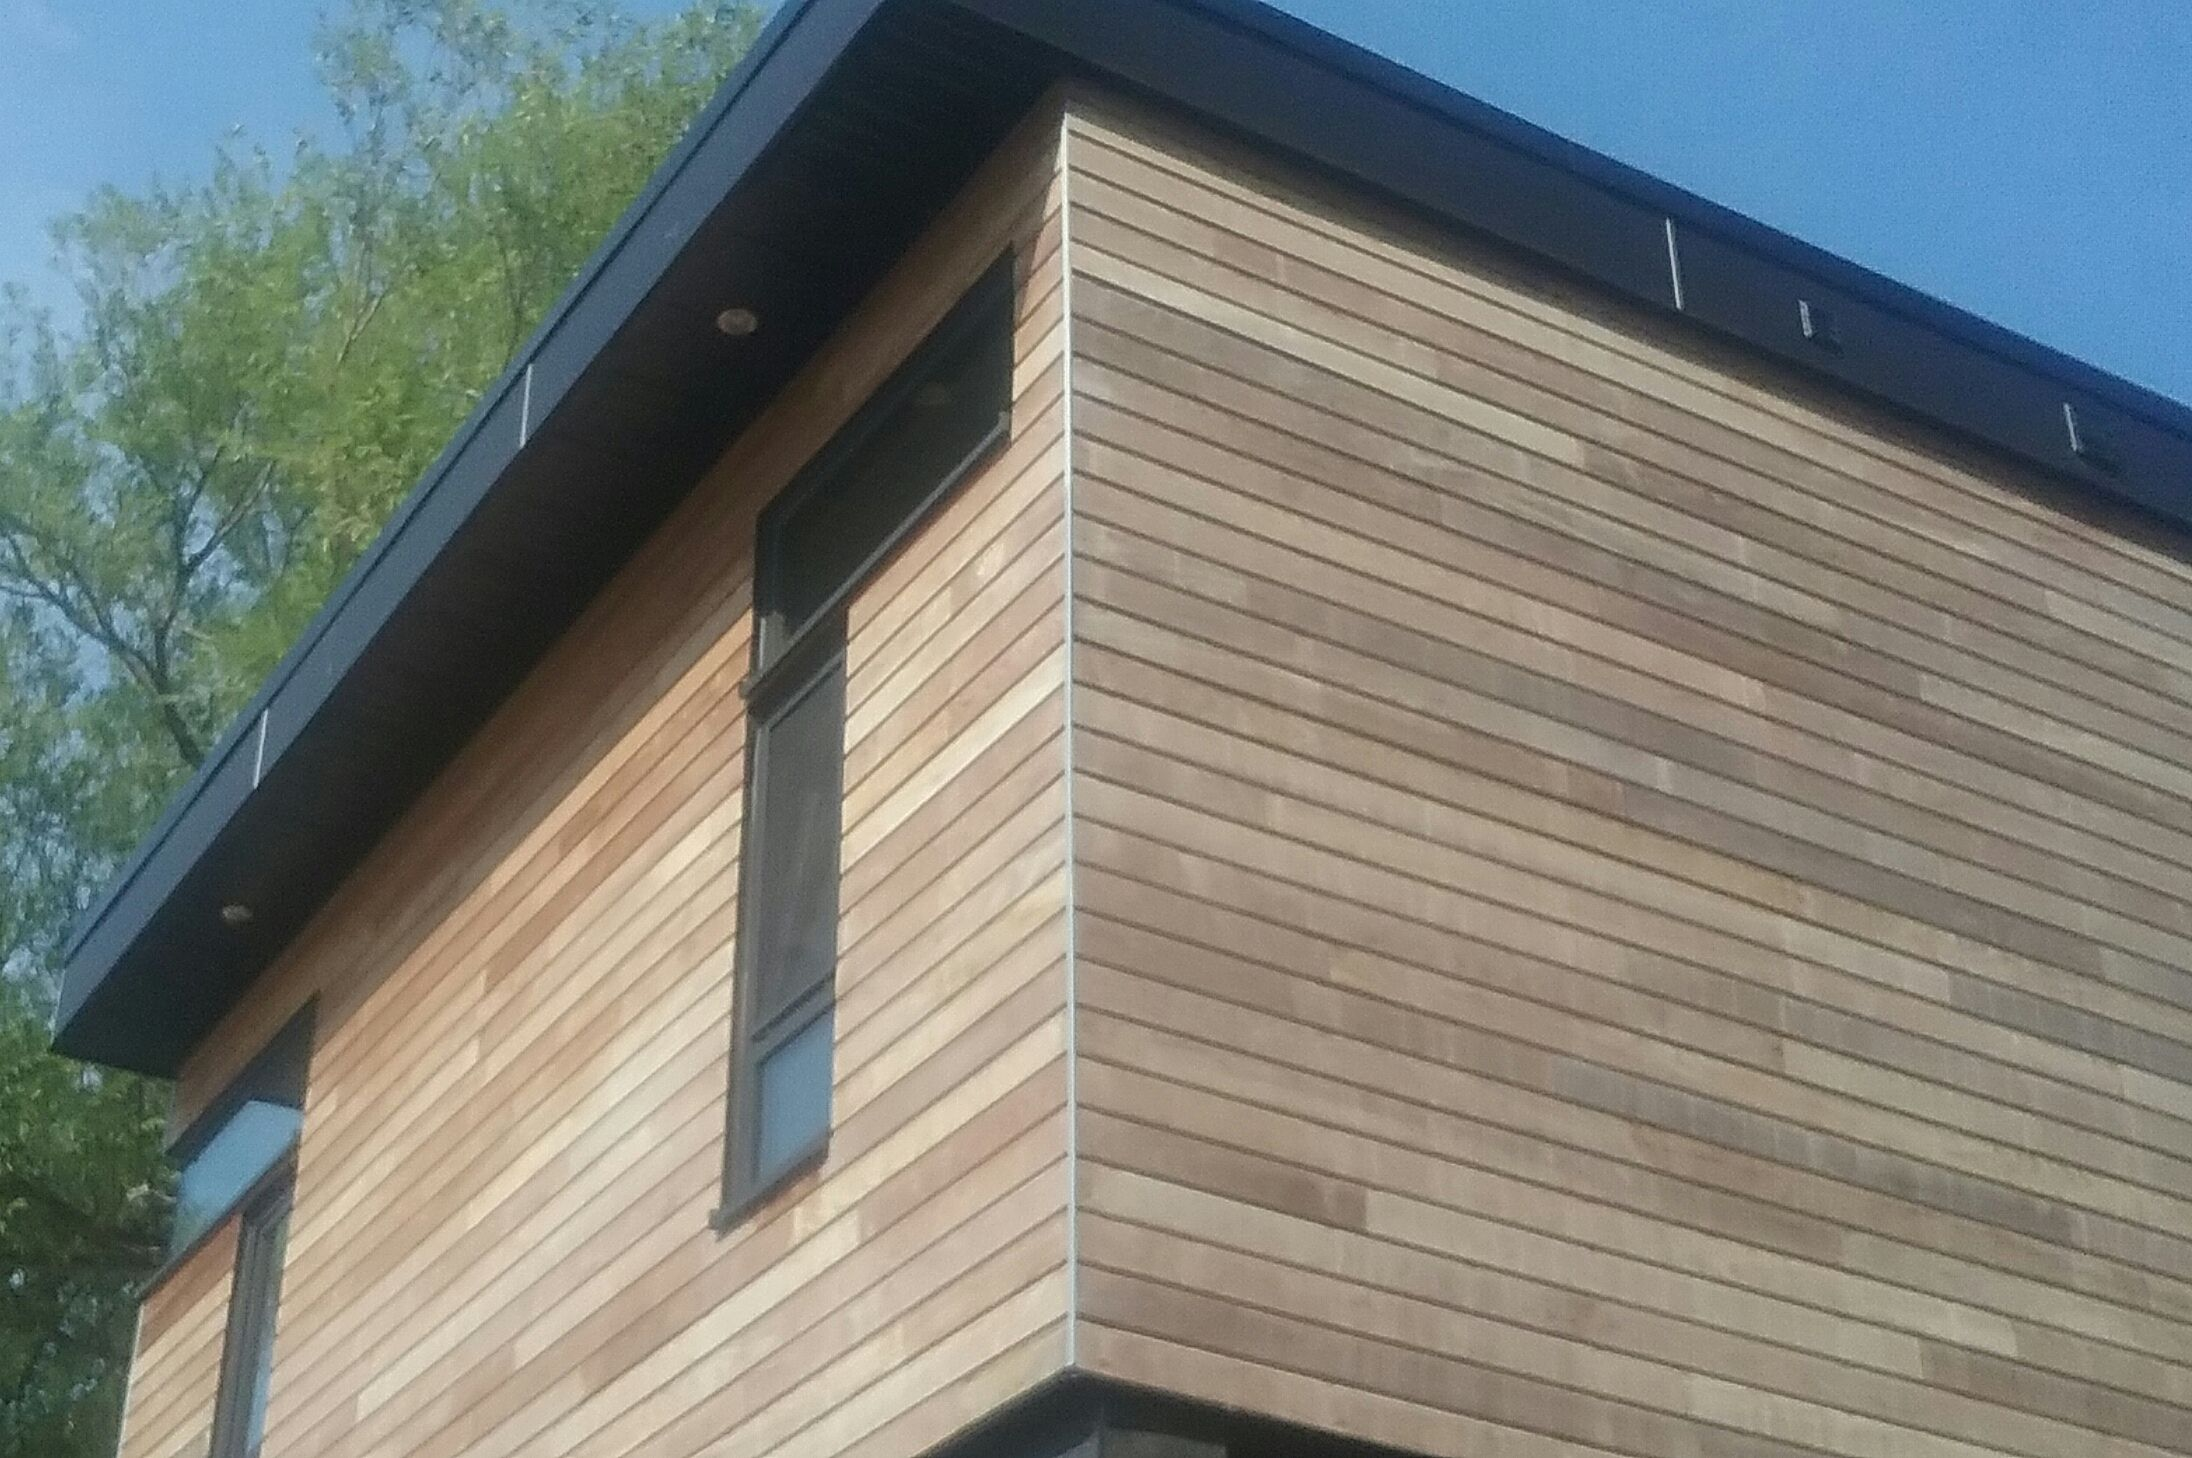 The best sustainable woods for exterior siding and decking - Cfp Cladding Decking Torrefied Wood Siding Made From North American Ash Visit Www